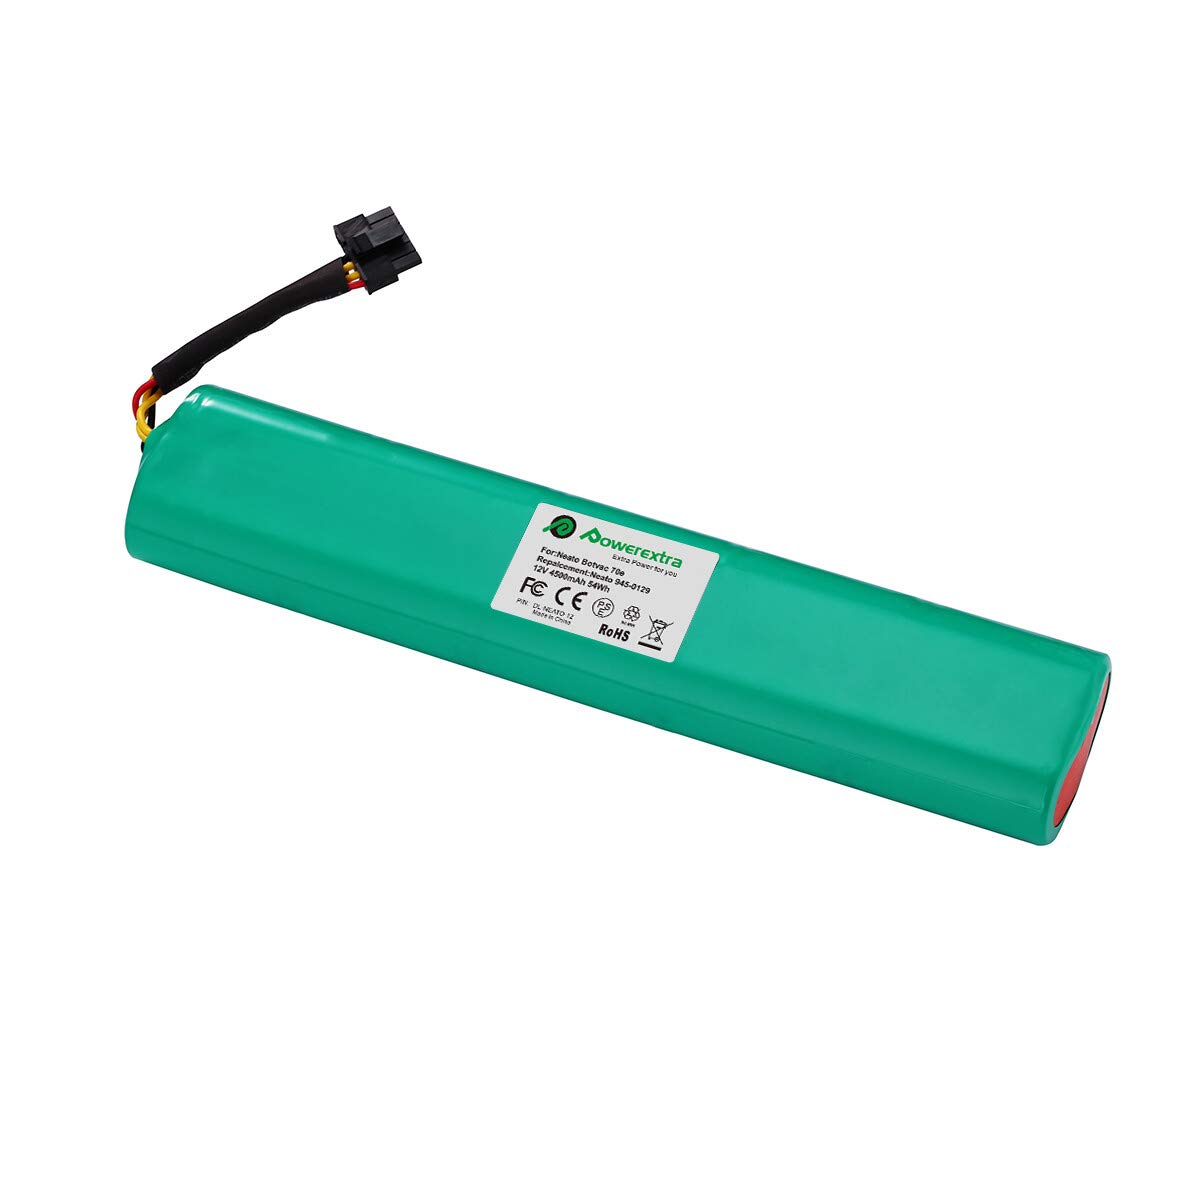 Upgraded Powerextra 12V 4500mAh Ni-Mh Replacement Battery Pack for Neato Botvac Series and Botvac D Series Neato Battery Neato Botvac Battery 70e, 75, 80, 85, Neato Robot Vacuum Cleaners by Powerextra